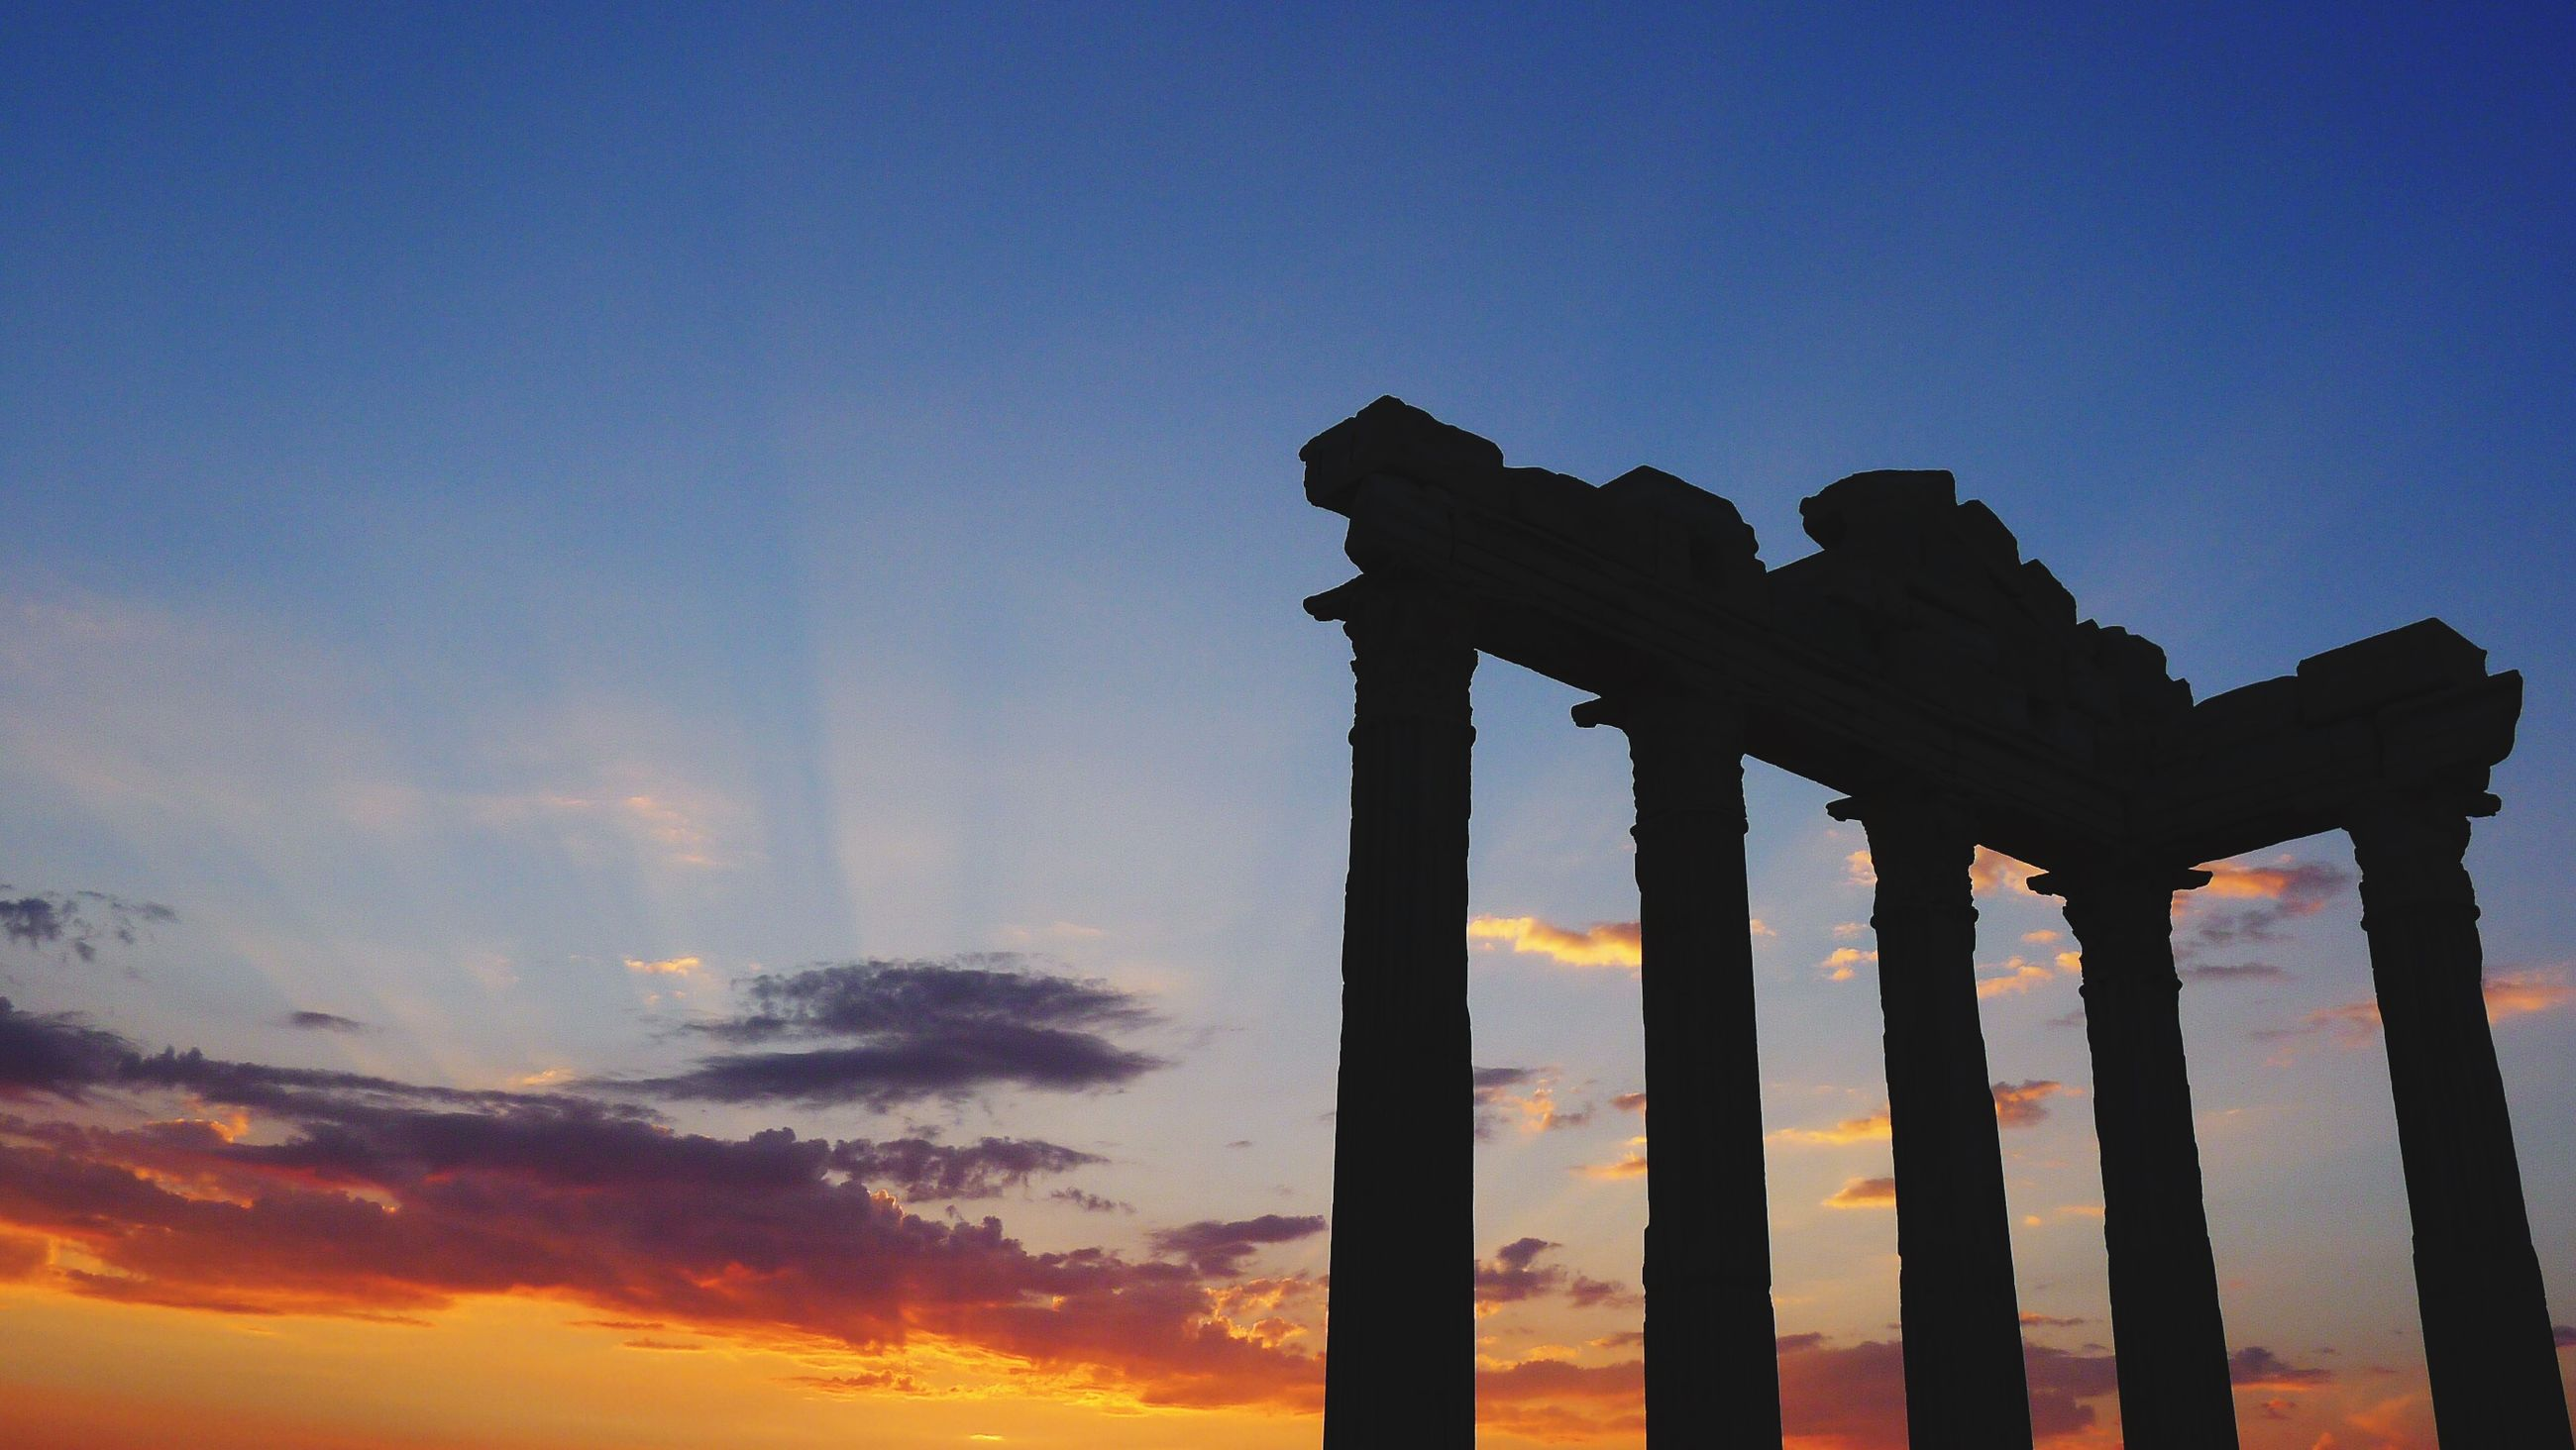 sunset, built structure, sky, architecture, low angle view, silhouette, orange color, blue, architectural column, tranquility, dusk, clear sky, scenics, outdoors, column, wood - material, nature, no people, sea, tranquil scene